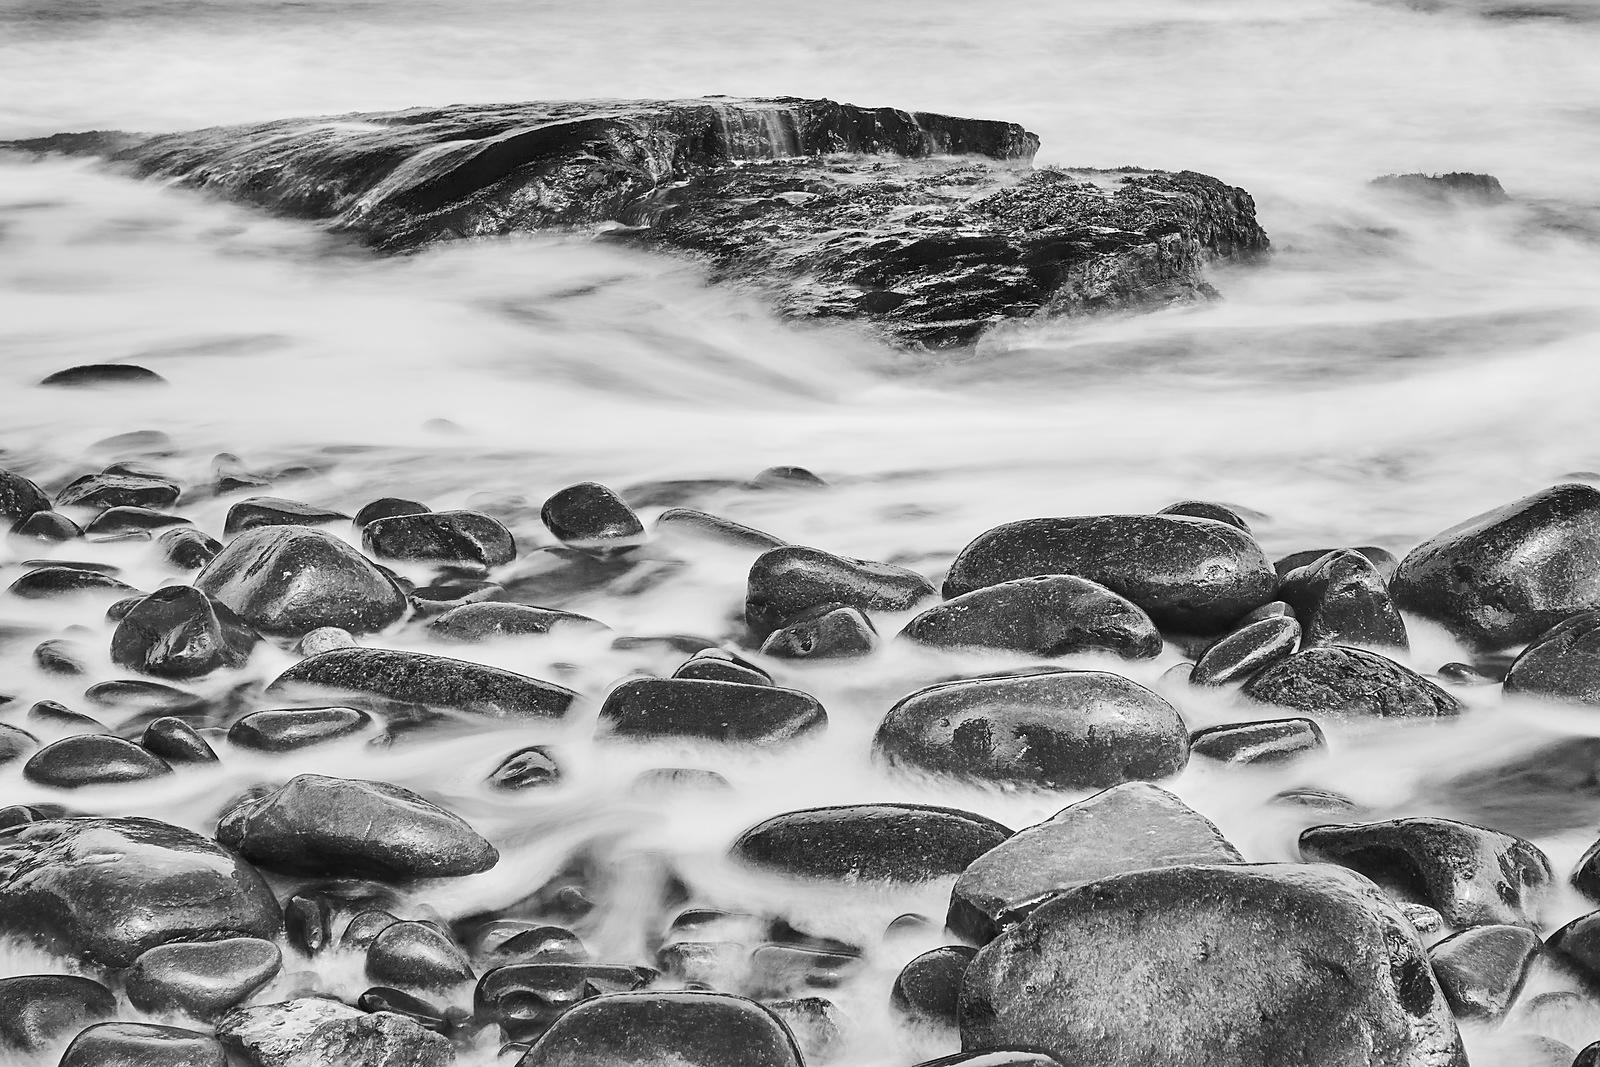 More washed rocks (B&W)